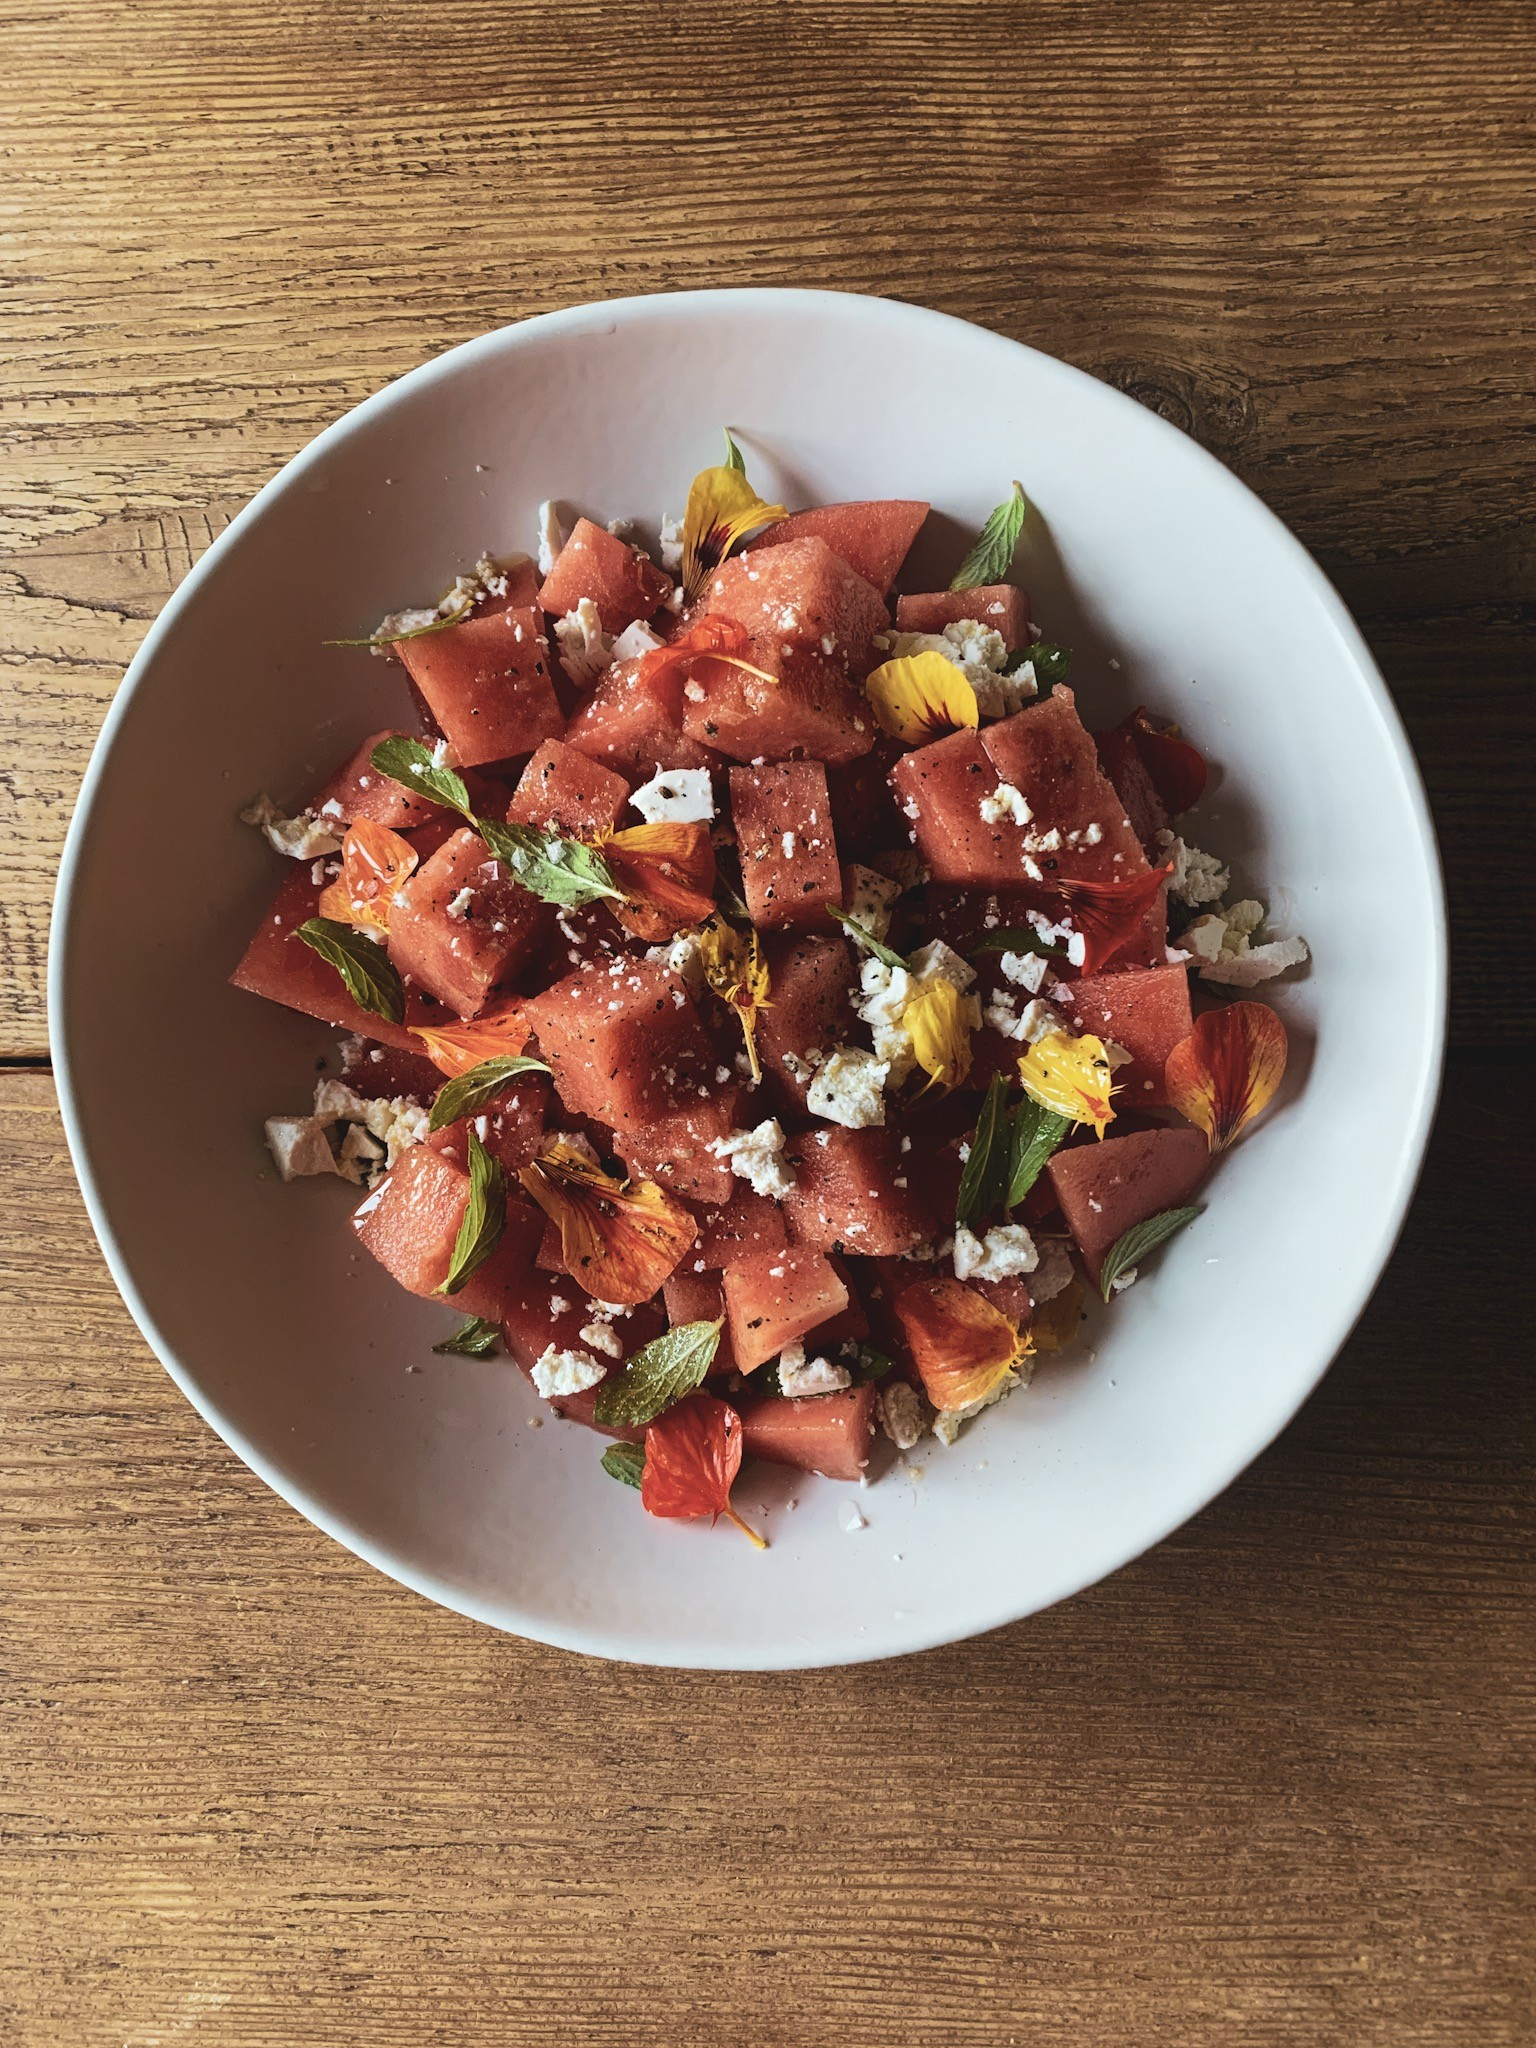 Watermelon Salad with Ricotta Salt, Mint, and Edible Flowers